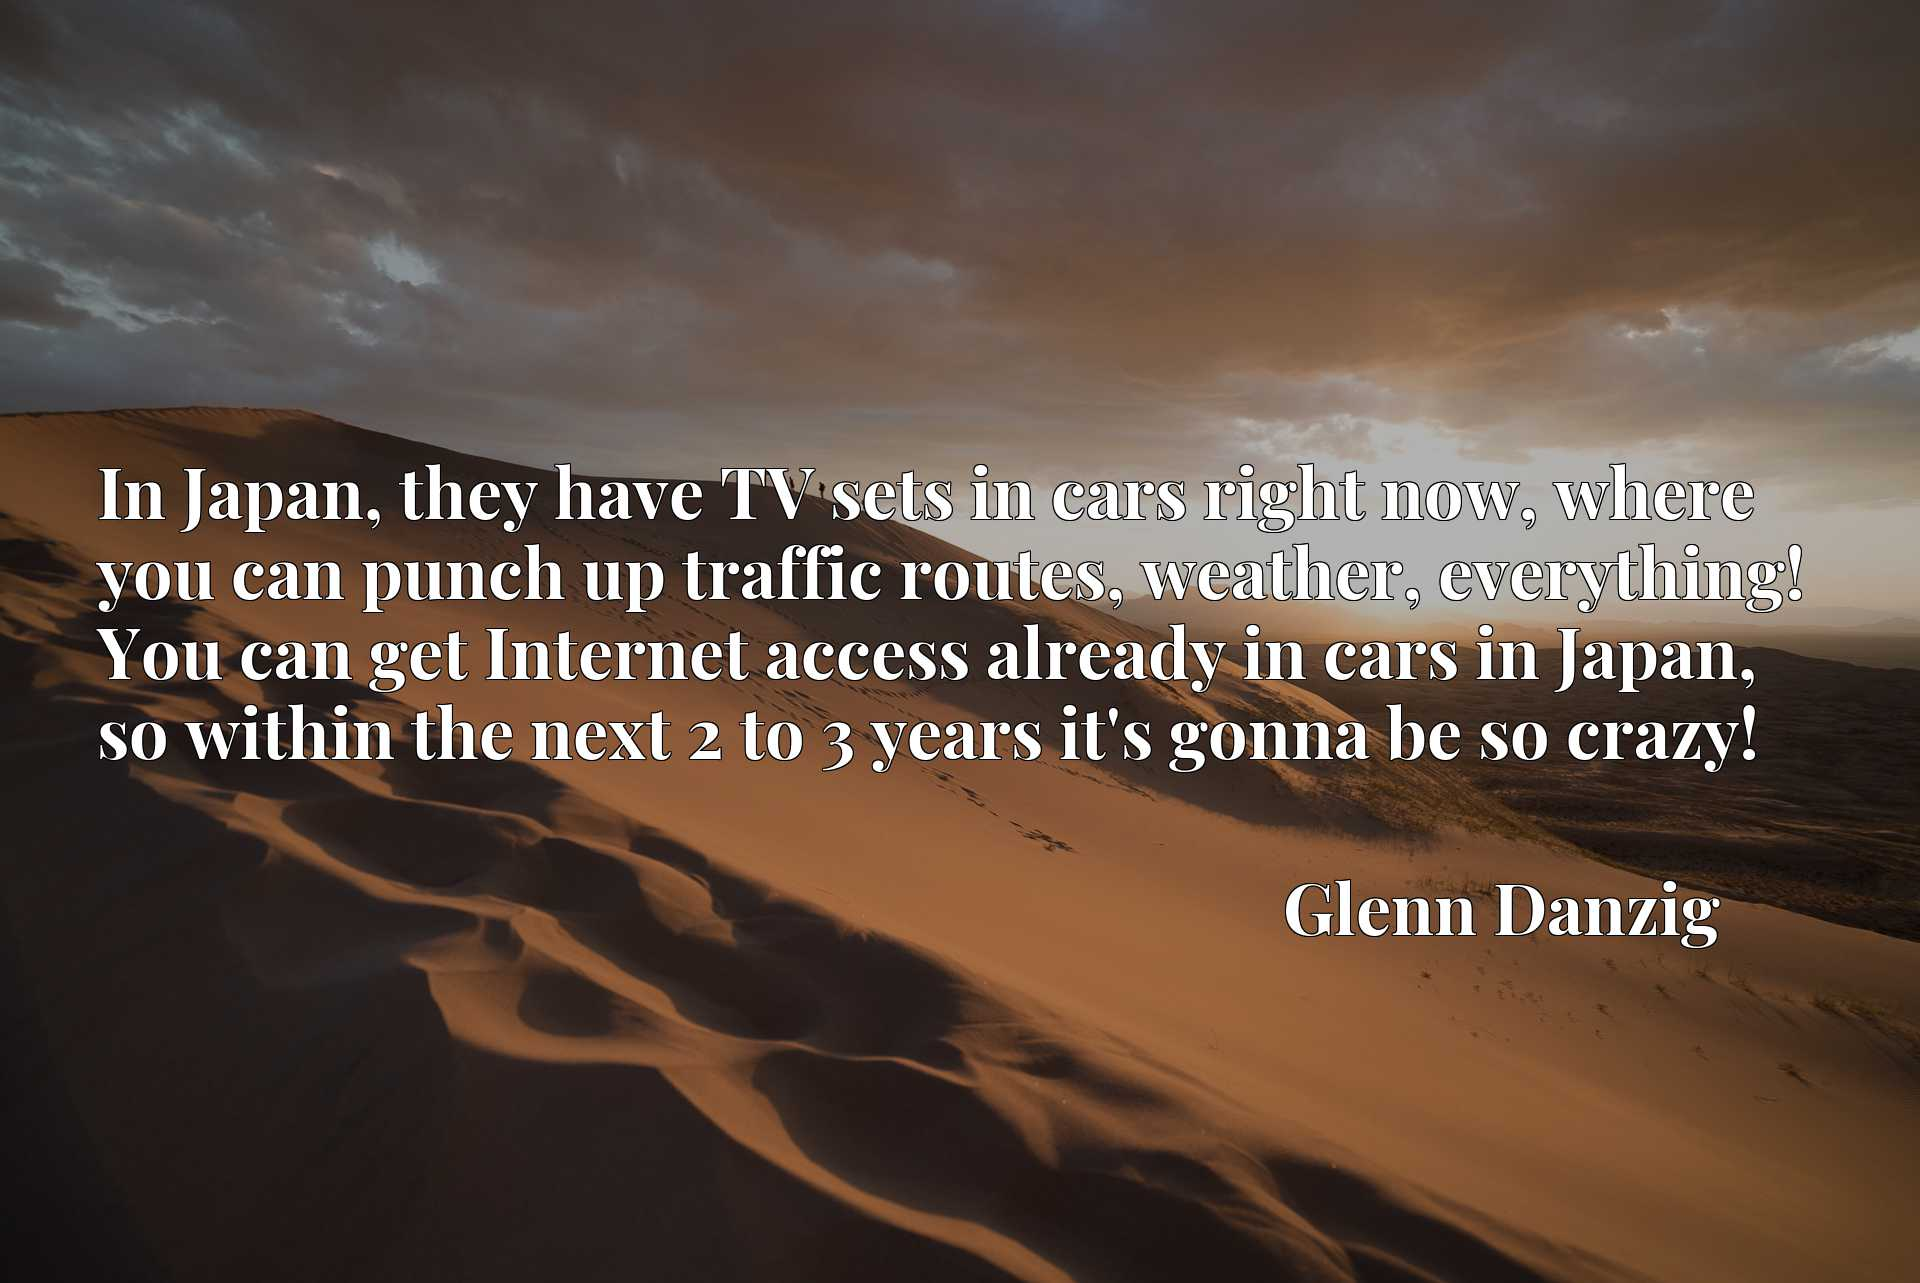 In Japan, they have TV sets in cars right now, where you can punch up traffic routes, weather, everything! You can get Internet access already in cars in Japan, so within the next 2 to 3 years it's gonna be so crazy!